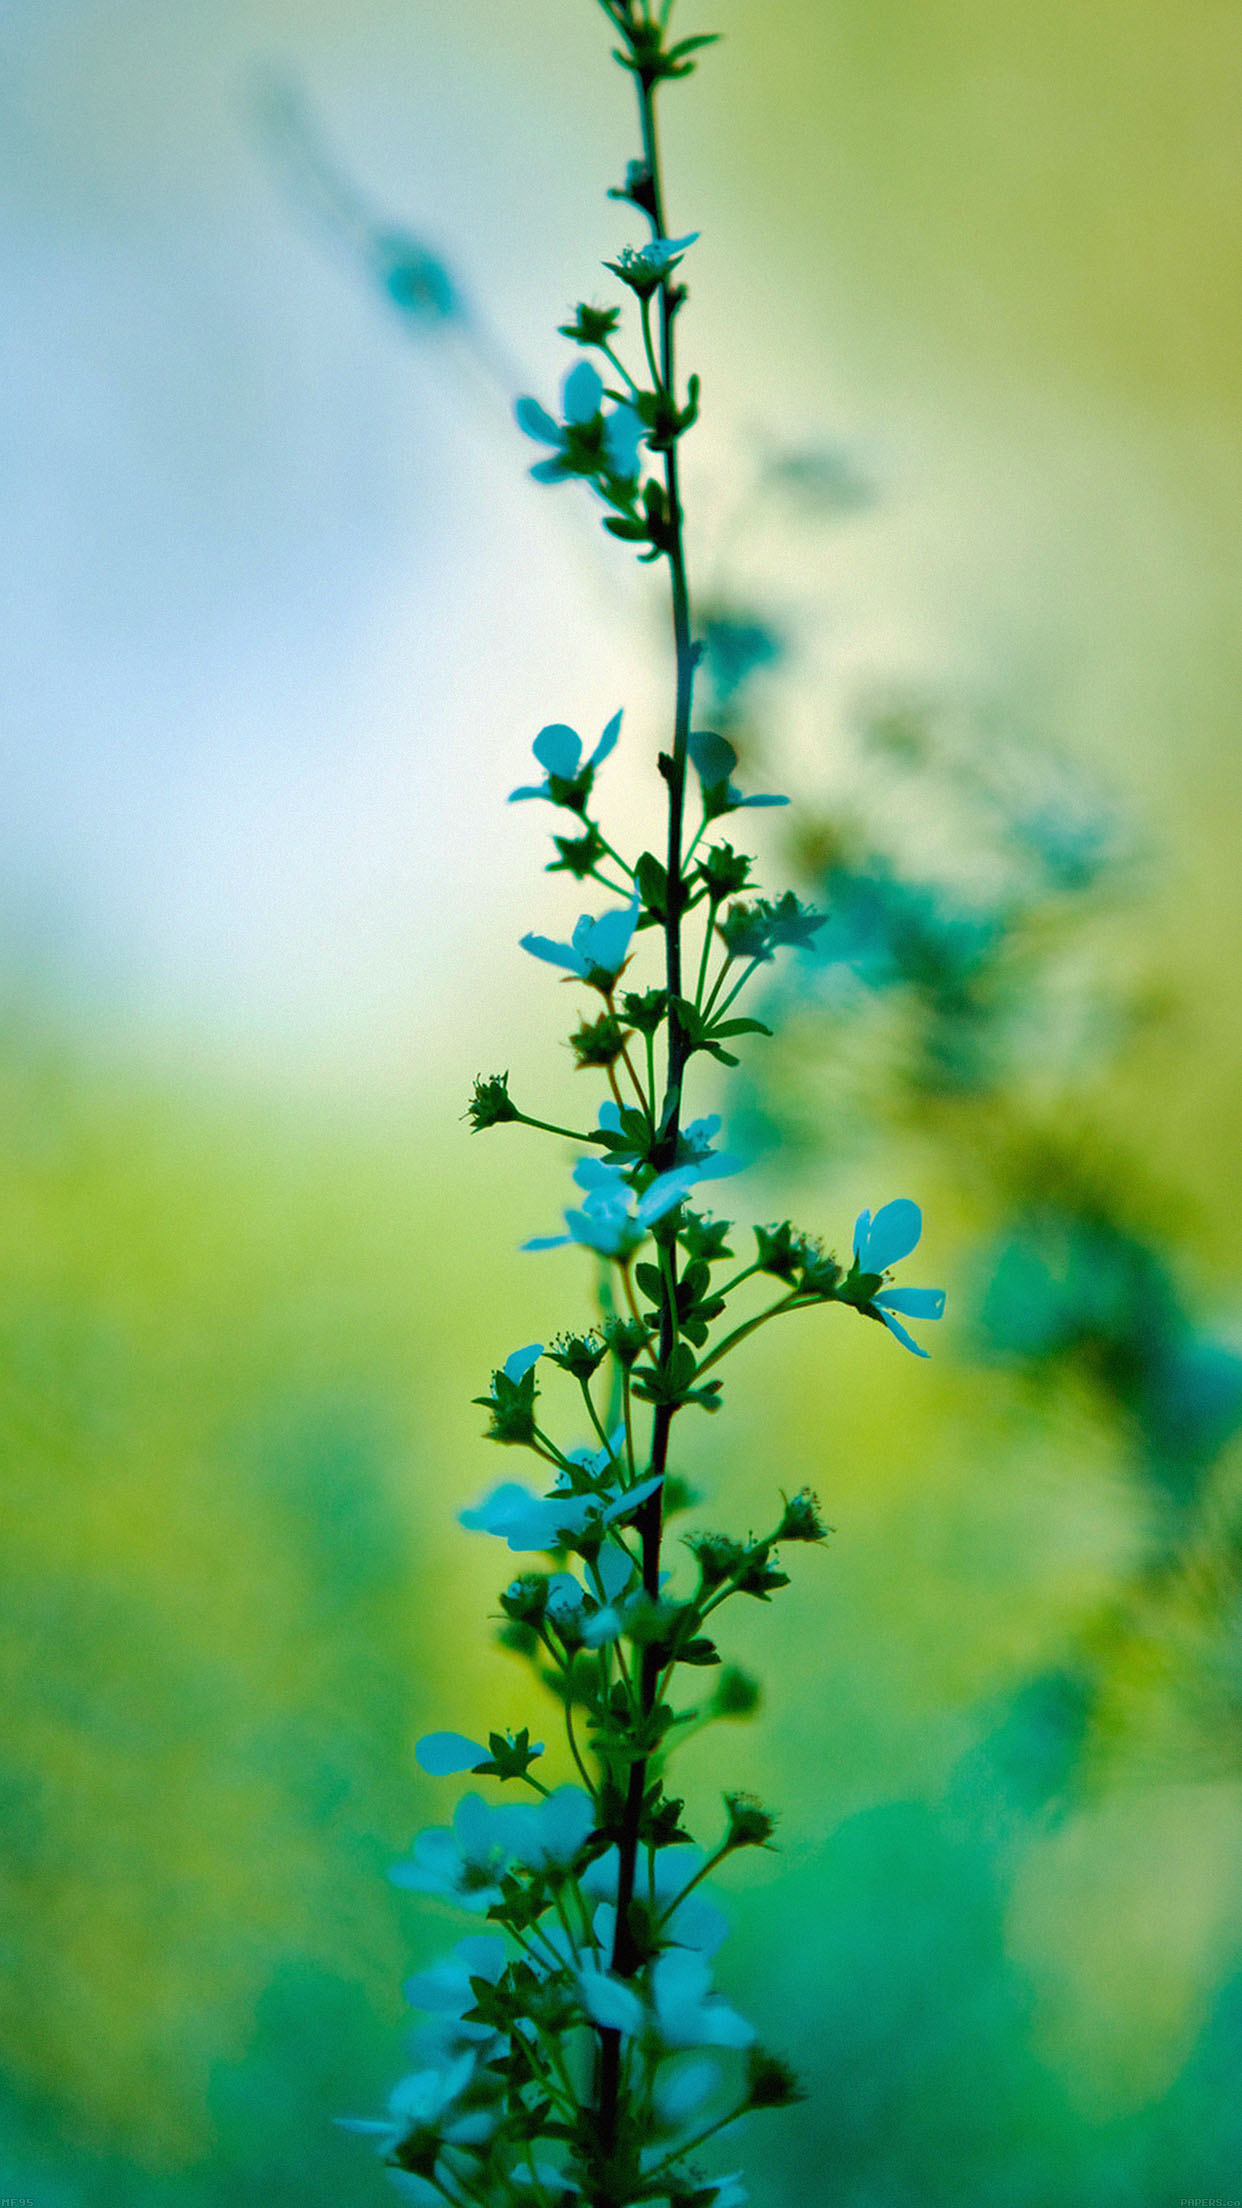 Mf95 Blue Flower Day Bokeh Nature Papers Co